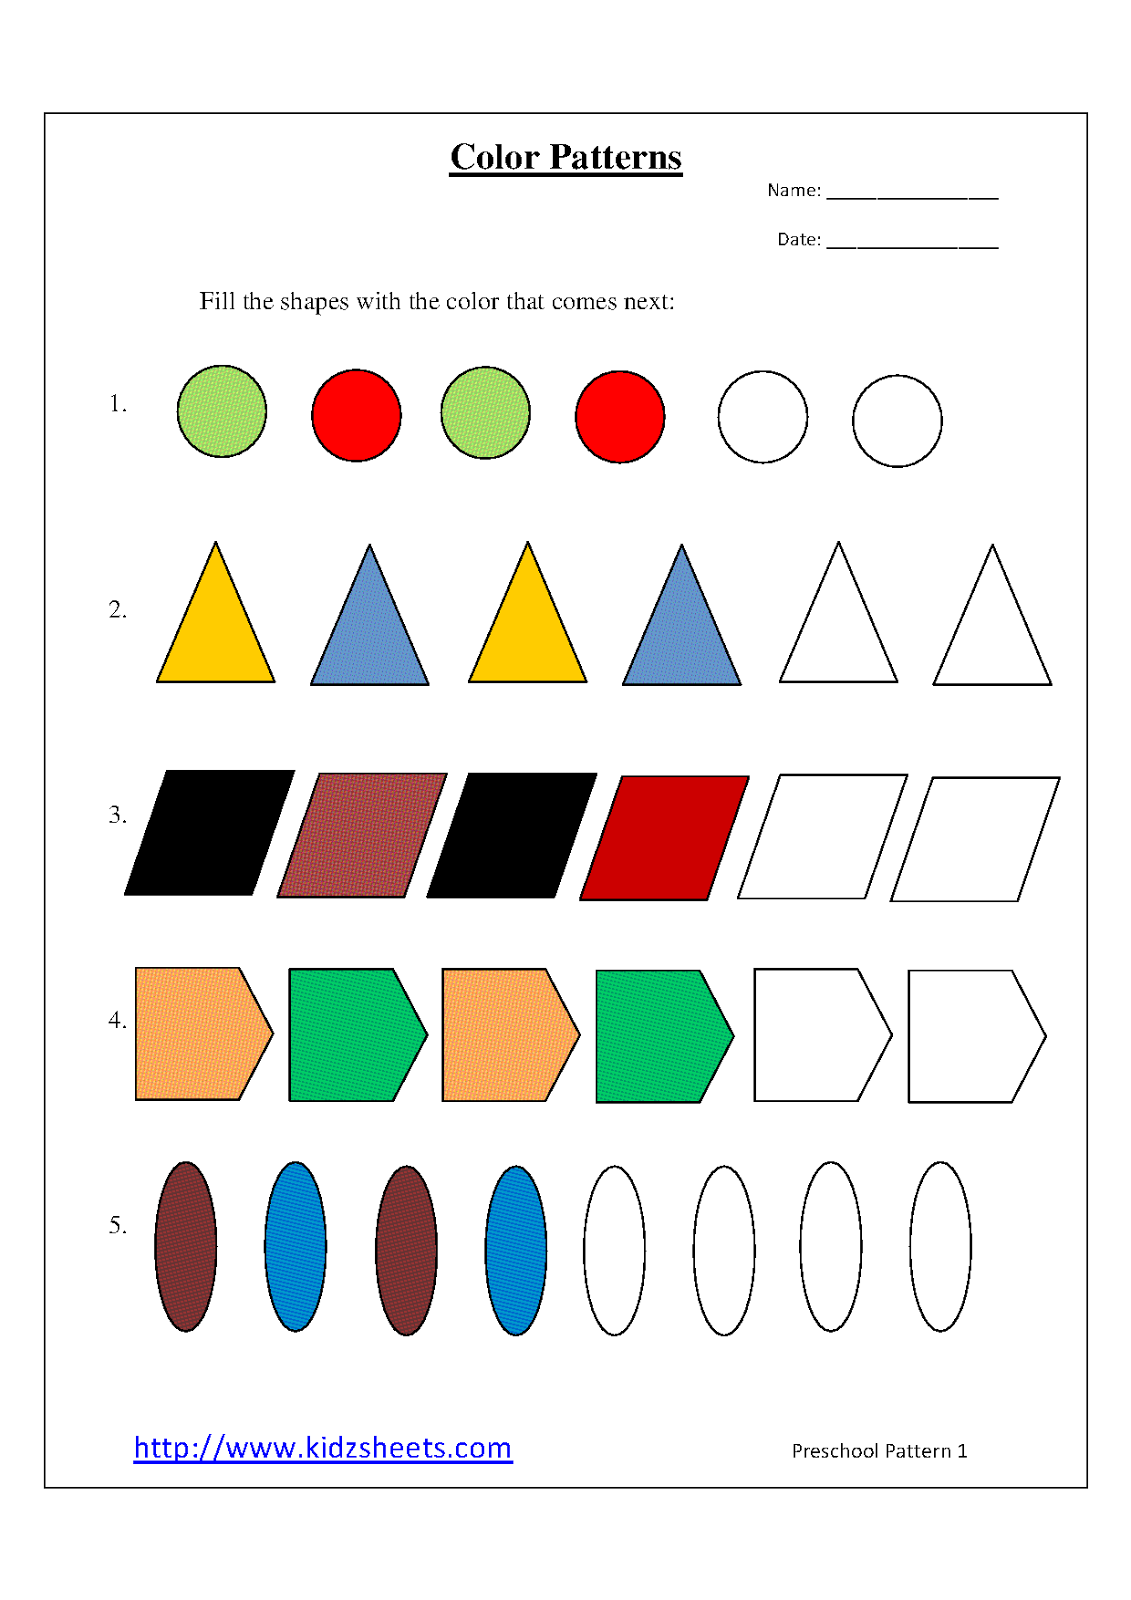 Kidz Worksheets Preschool Color Patterns Worksheet1 – Preschool Pattern Worksheets